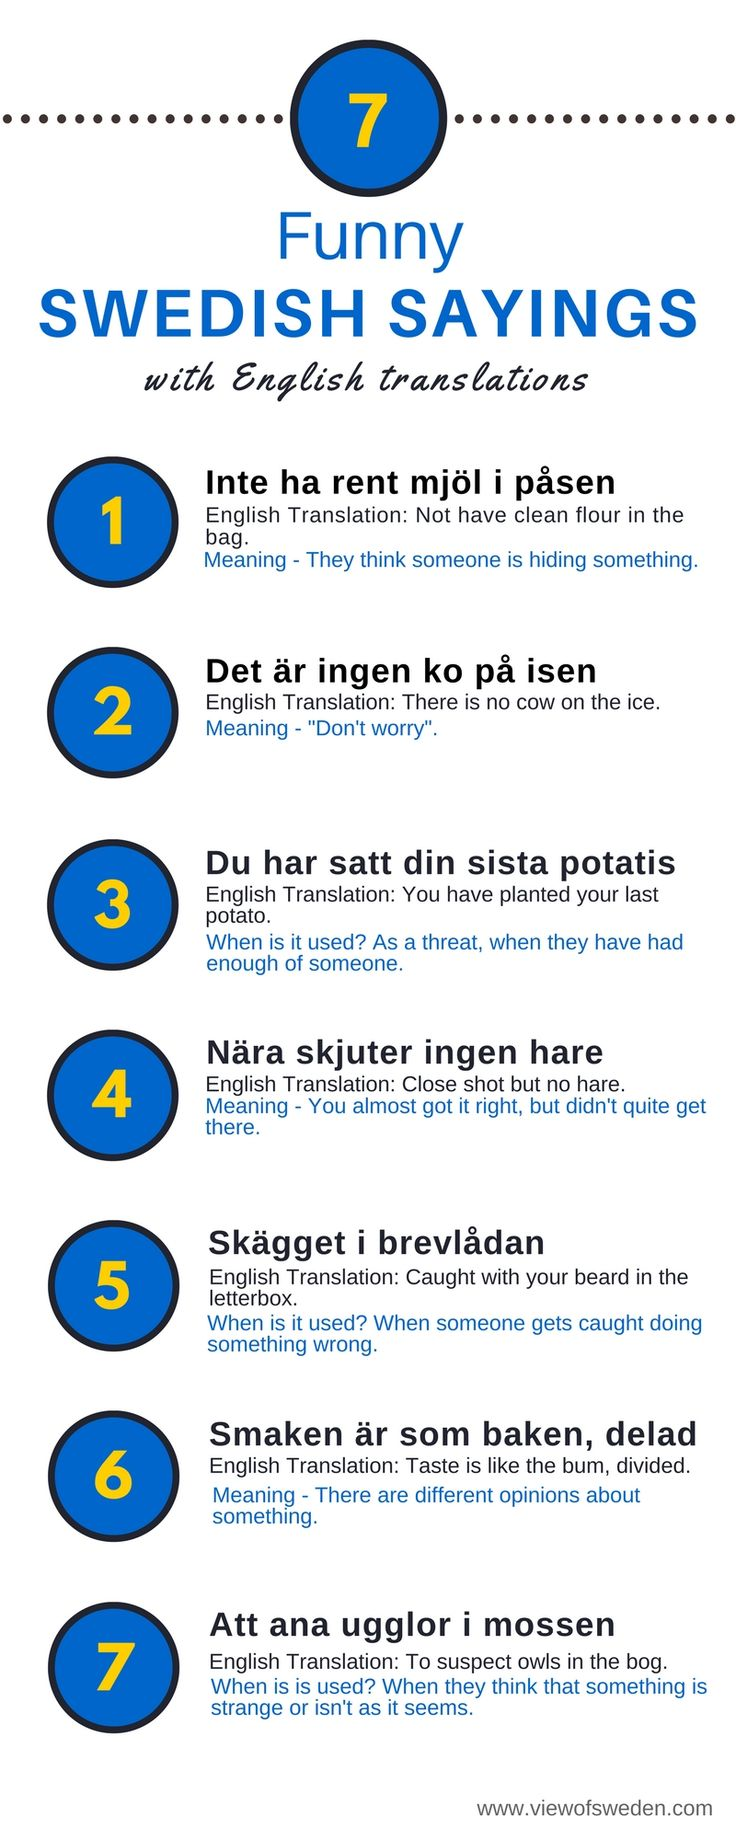 Swedish Sayings with English translations. www.viewofsweden.com